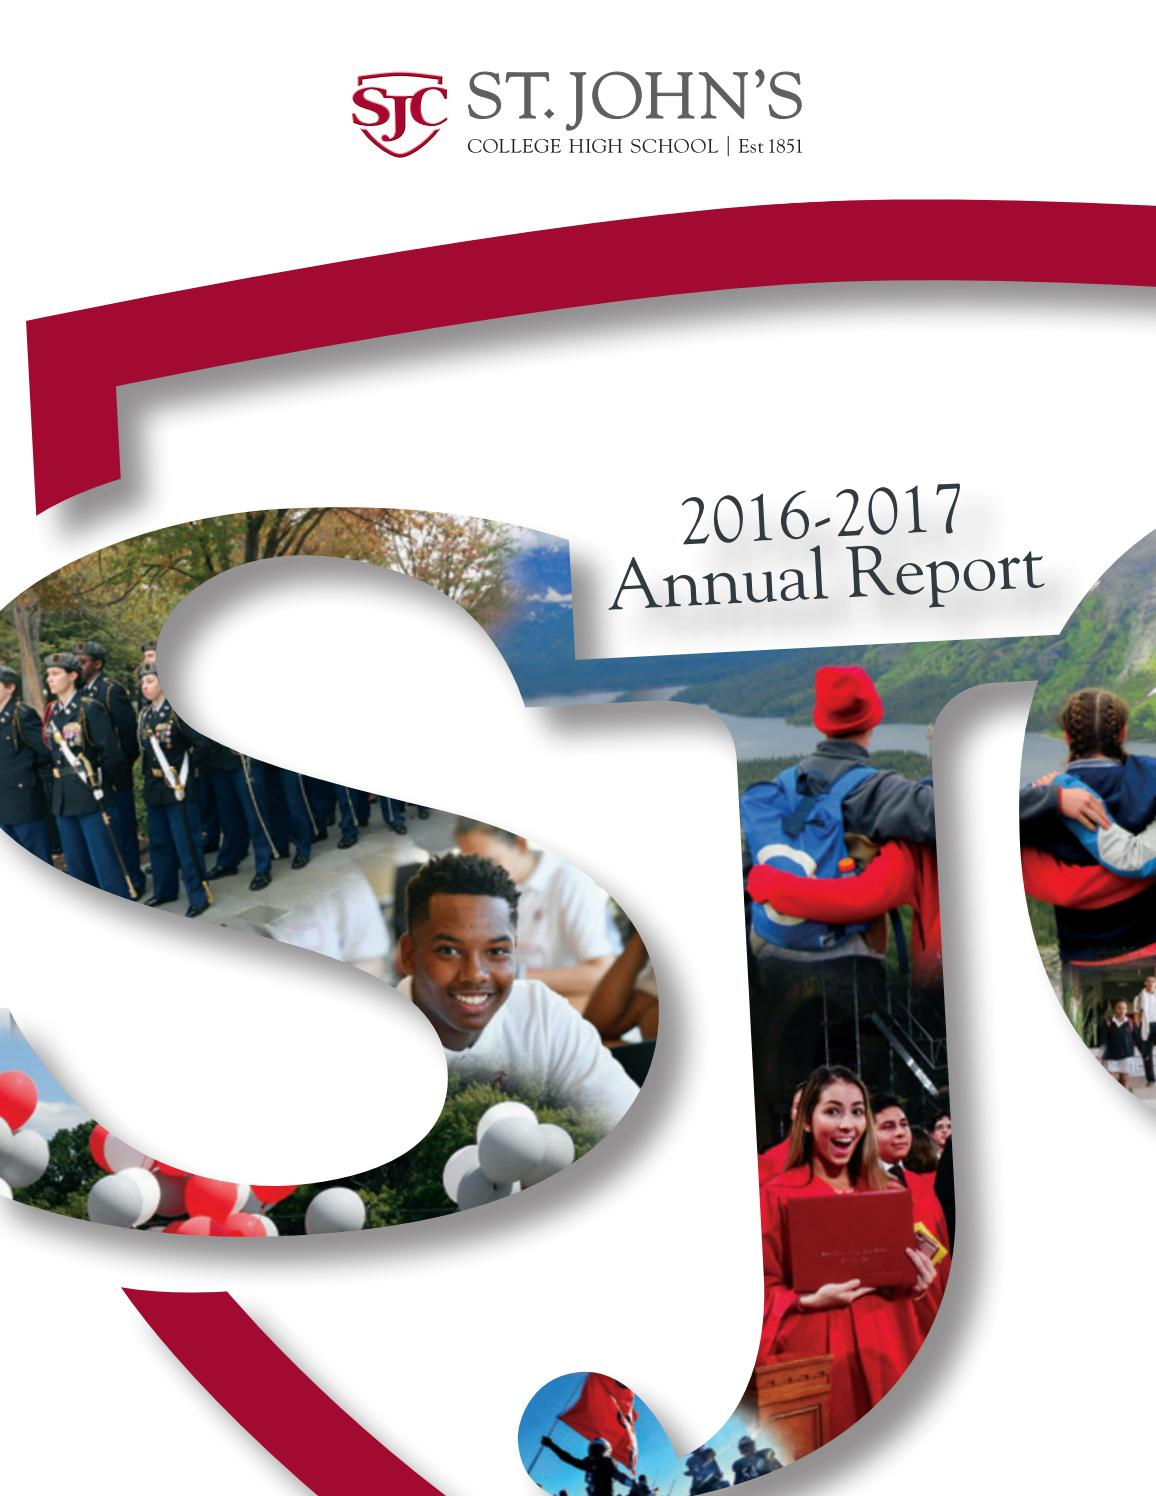 St  John's Annual Report 2016-2017 by St  John's College